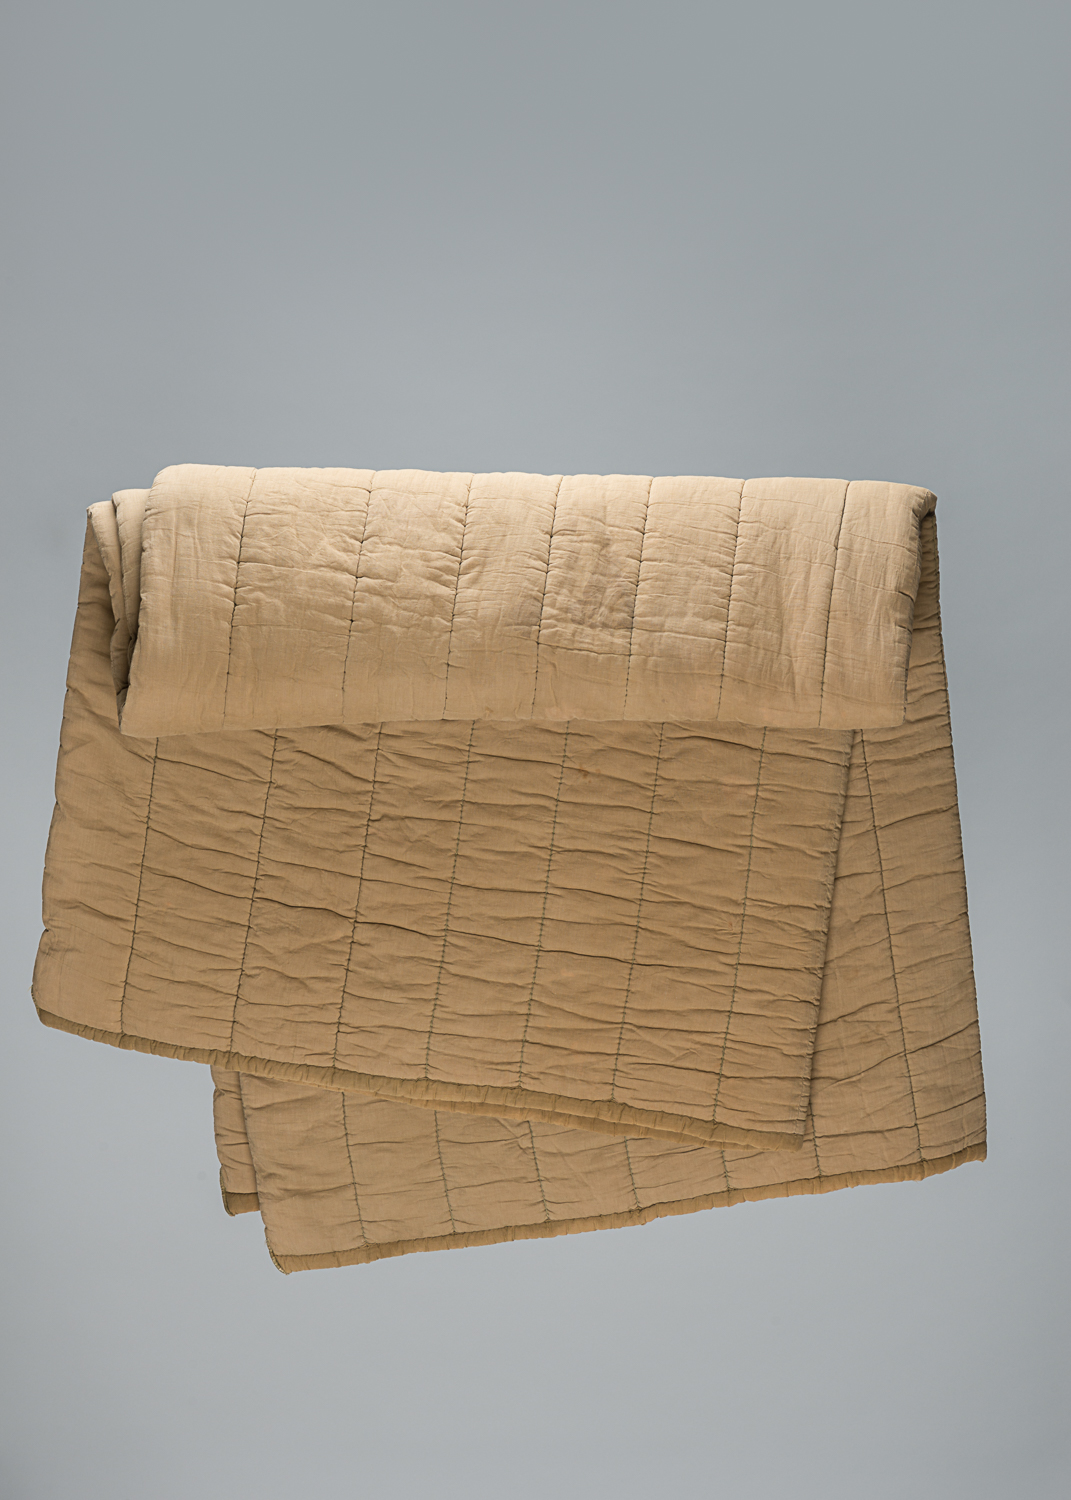 This large quilted blanket was given to Marcus (Max) Appelboom when he was a prisoner at the Auschwitz-Birkenau concentration camp.